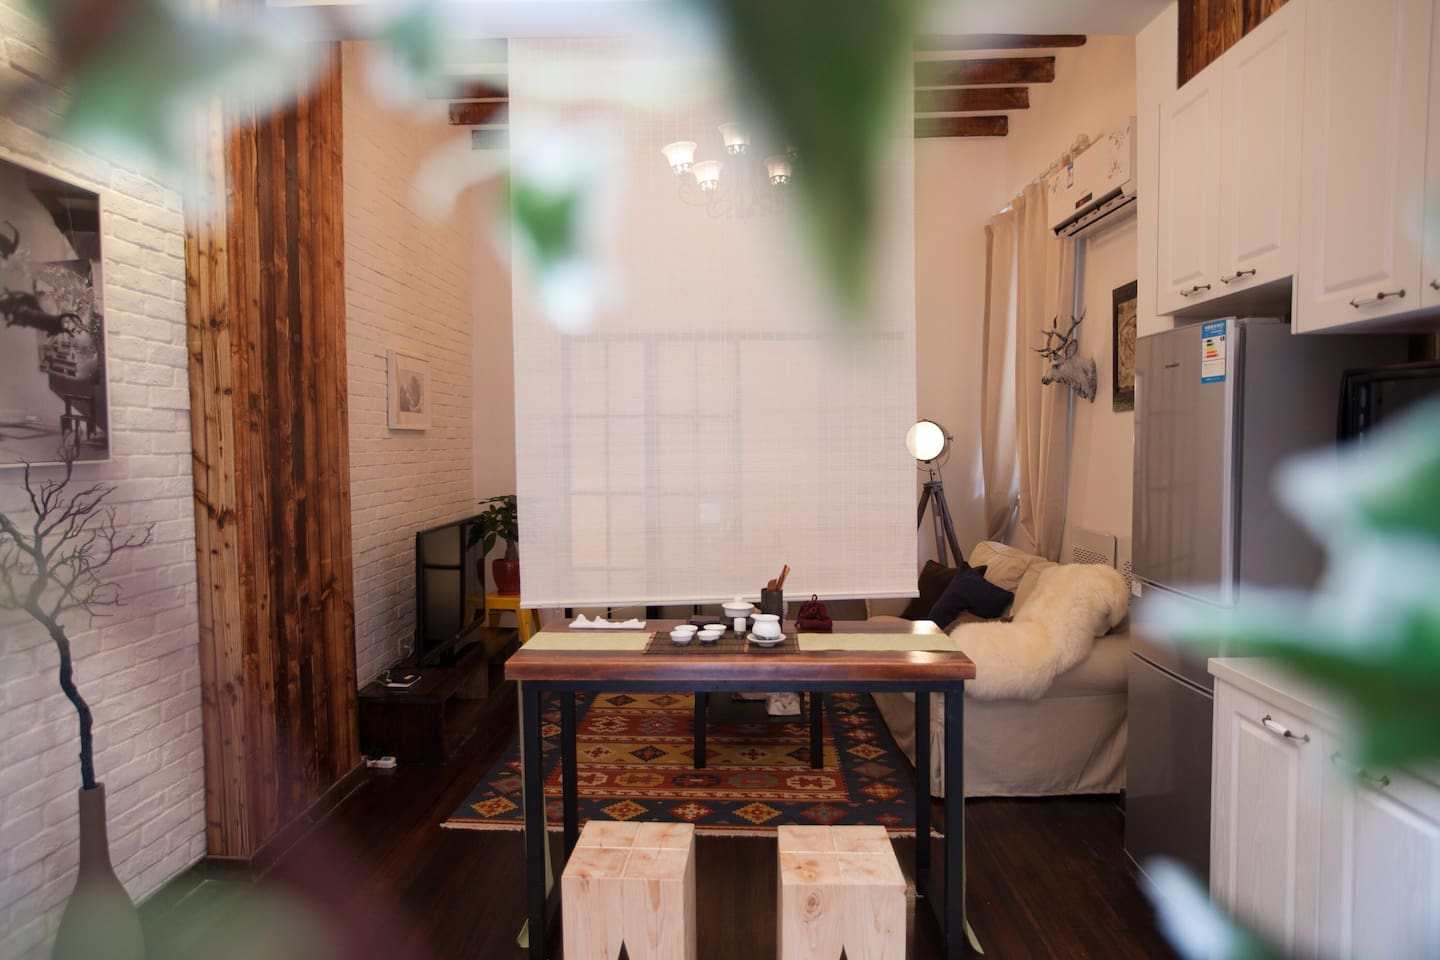 aaeaaecccaeceaeaecaeaa creaecefrench concession houses for rent in shanghai: heater table aaad